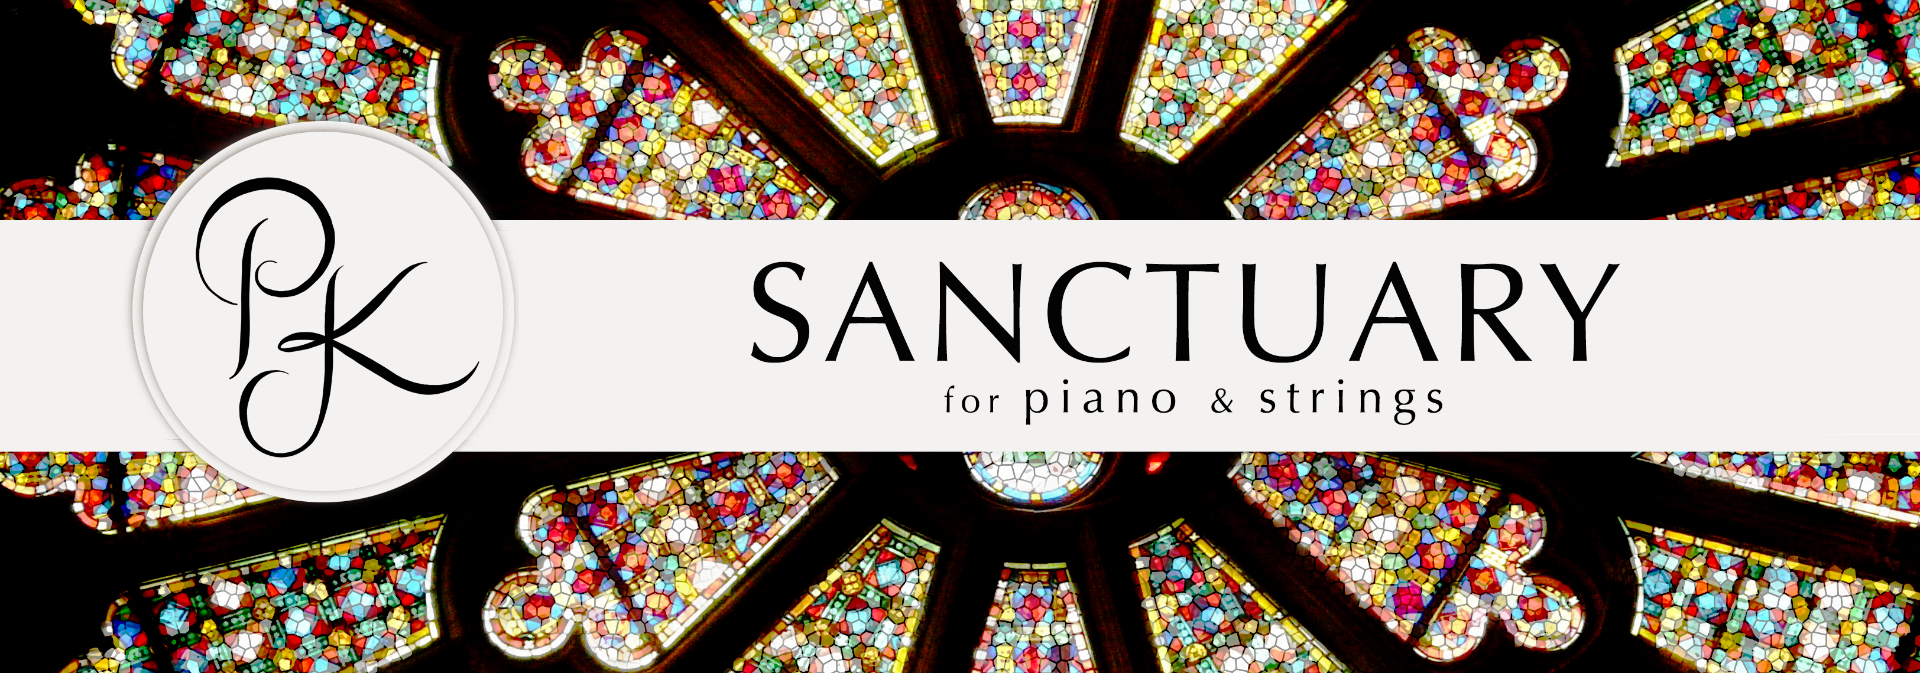 sanctuary-graphic